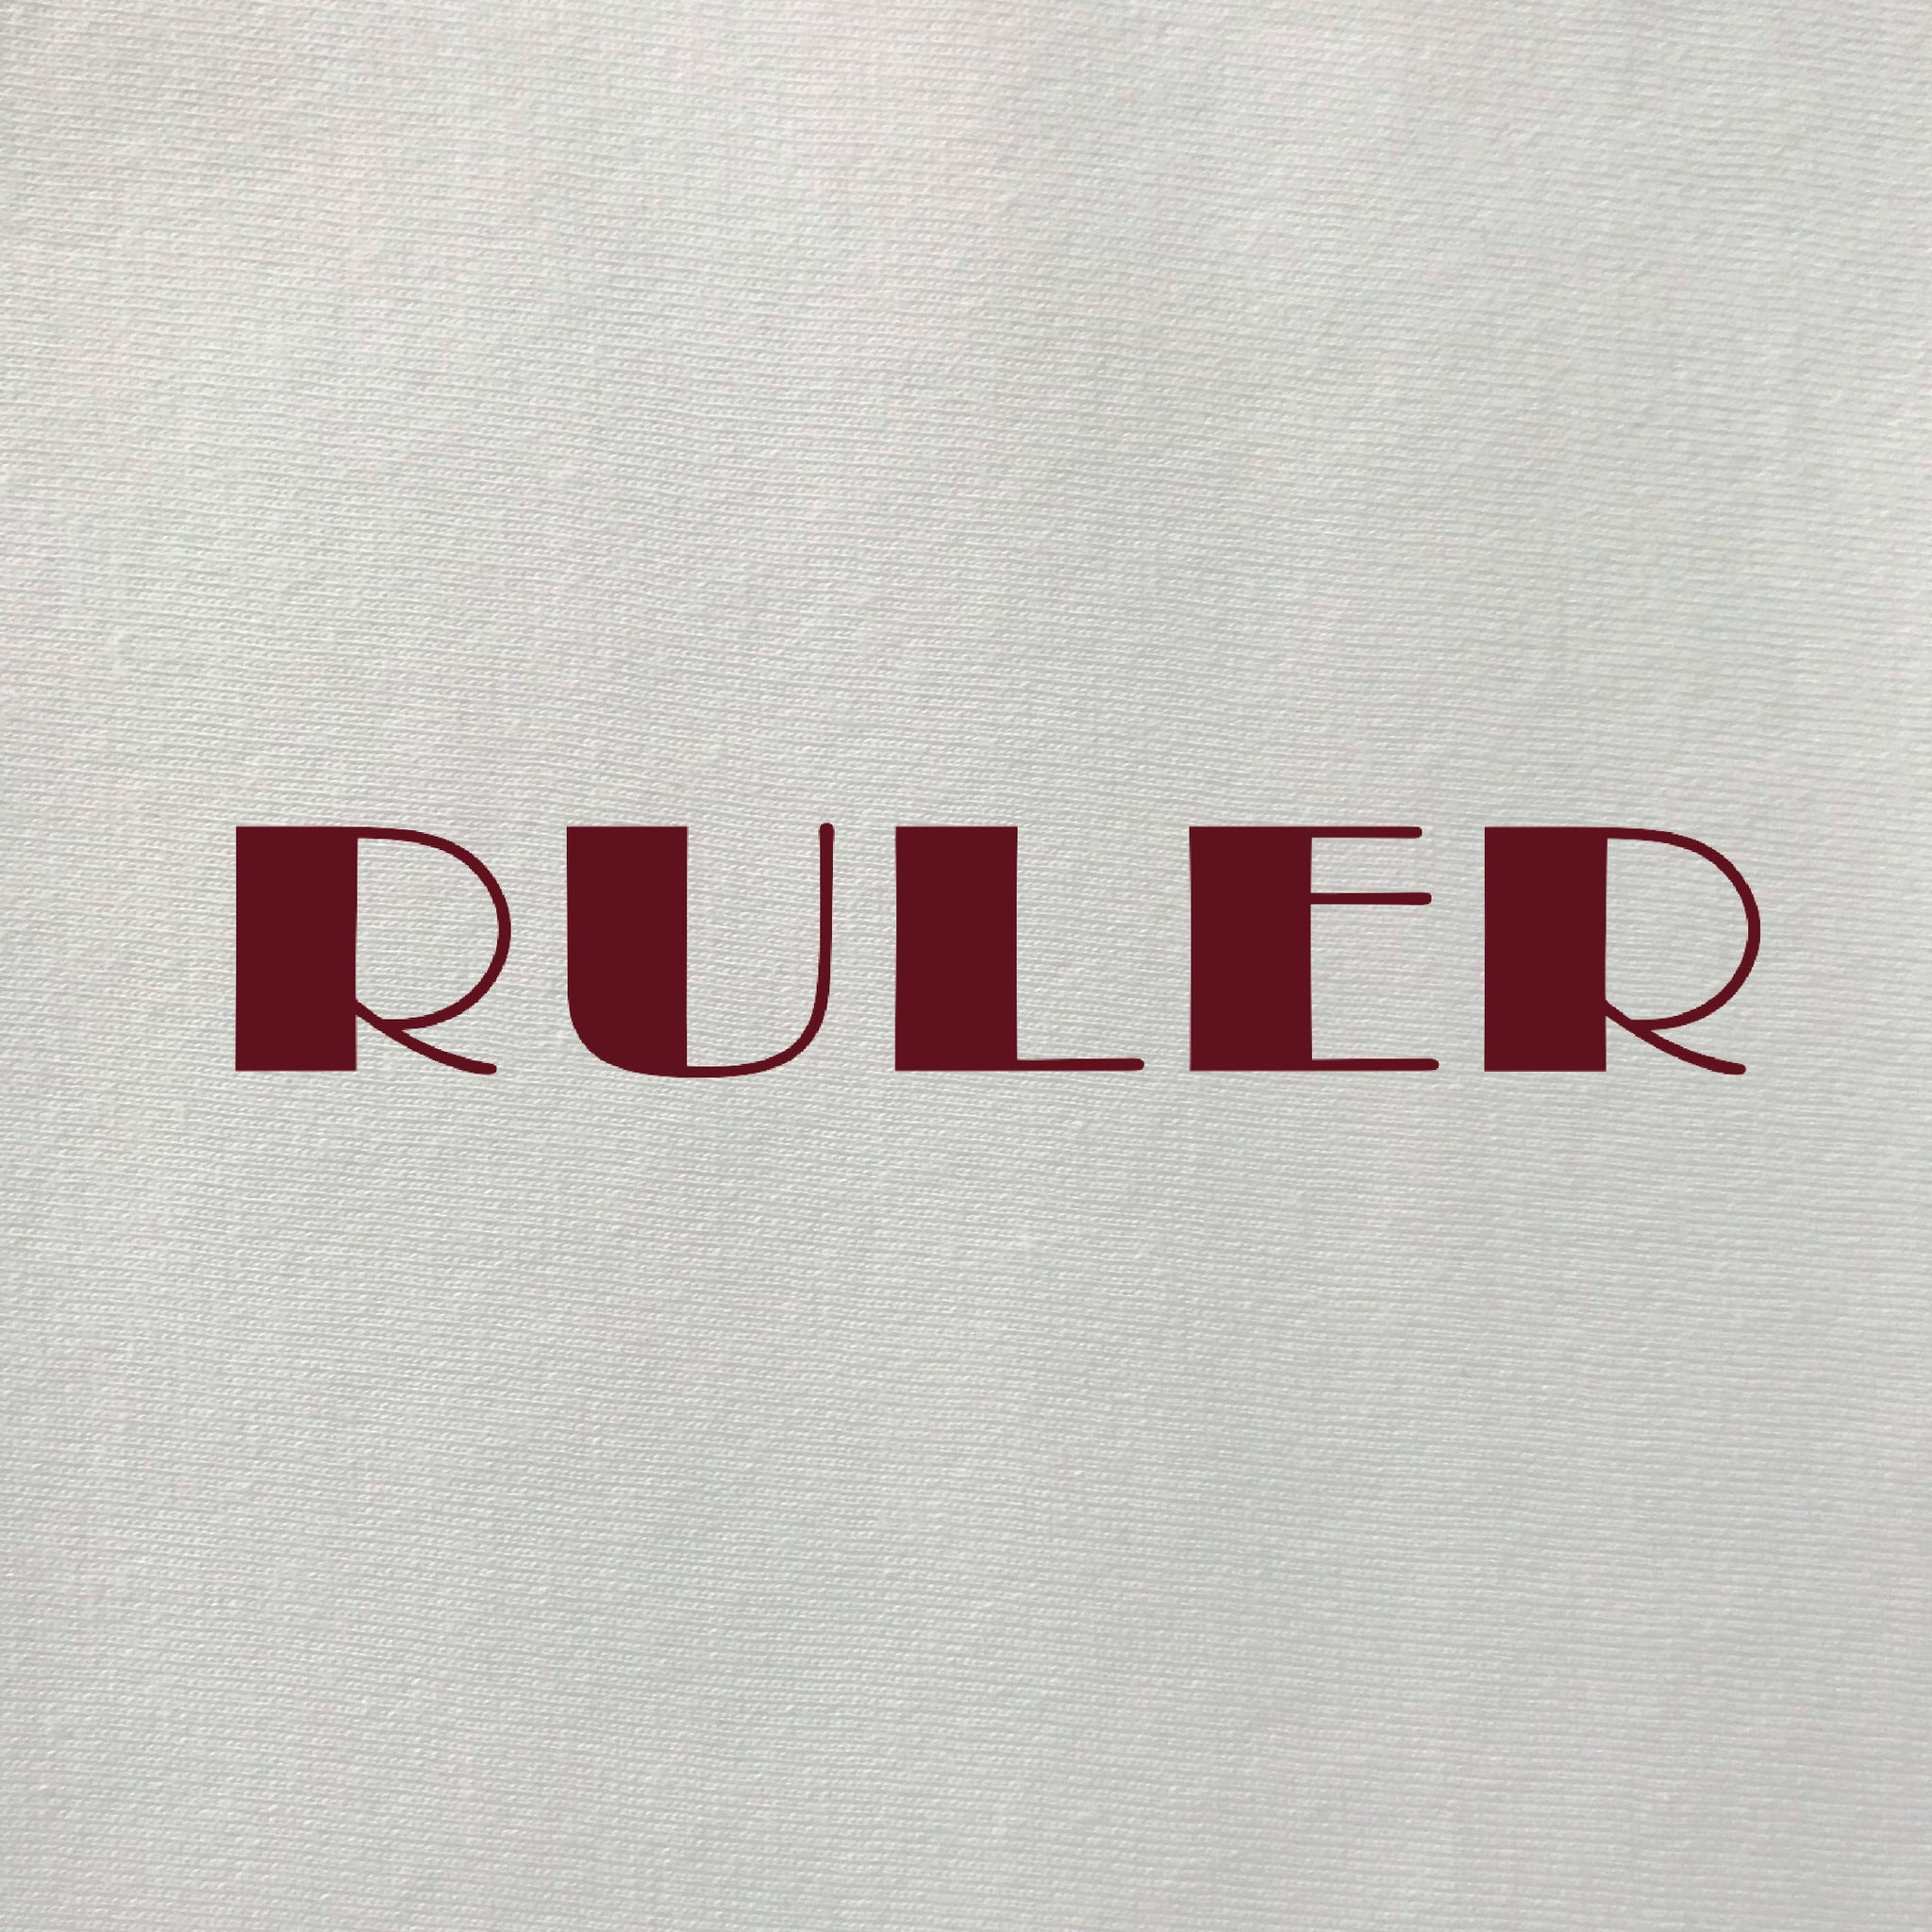 Ruler - Emerald Berlin